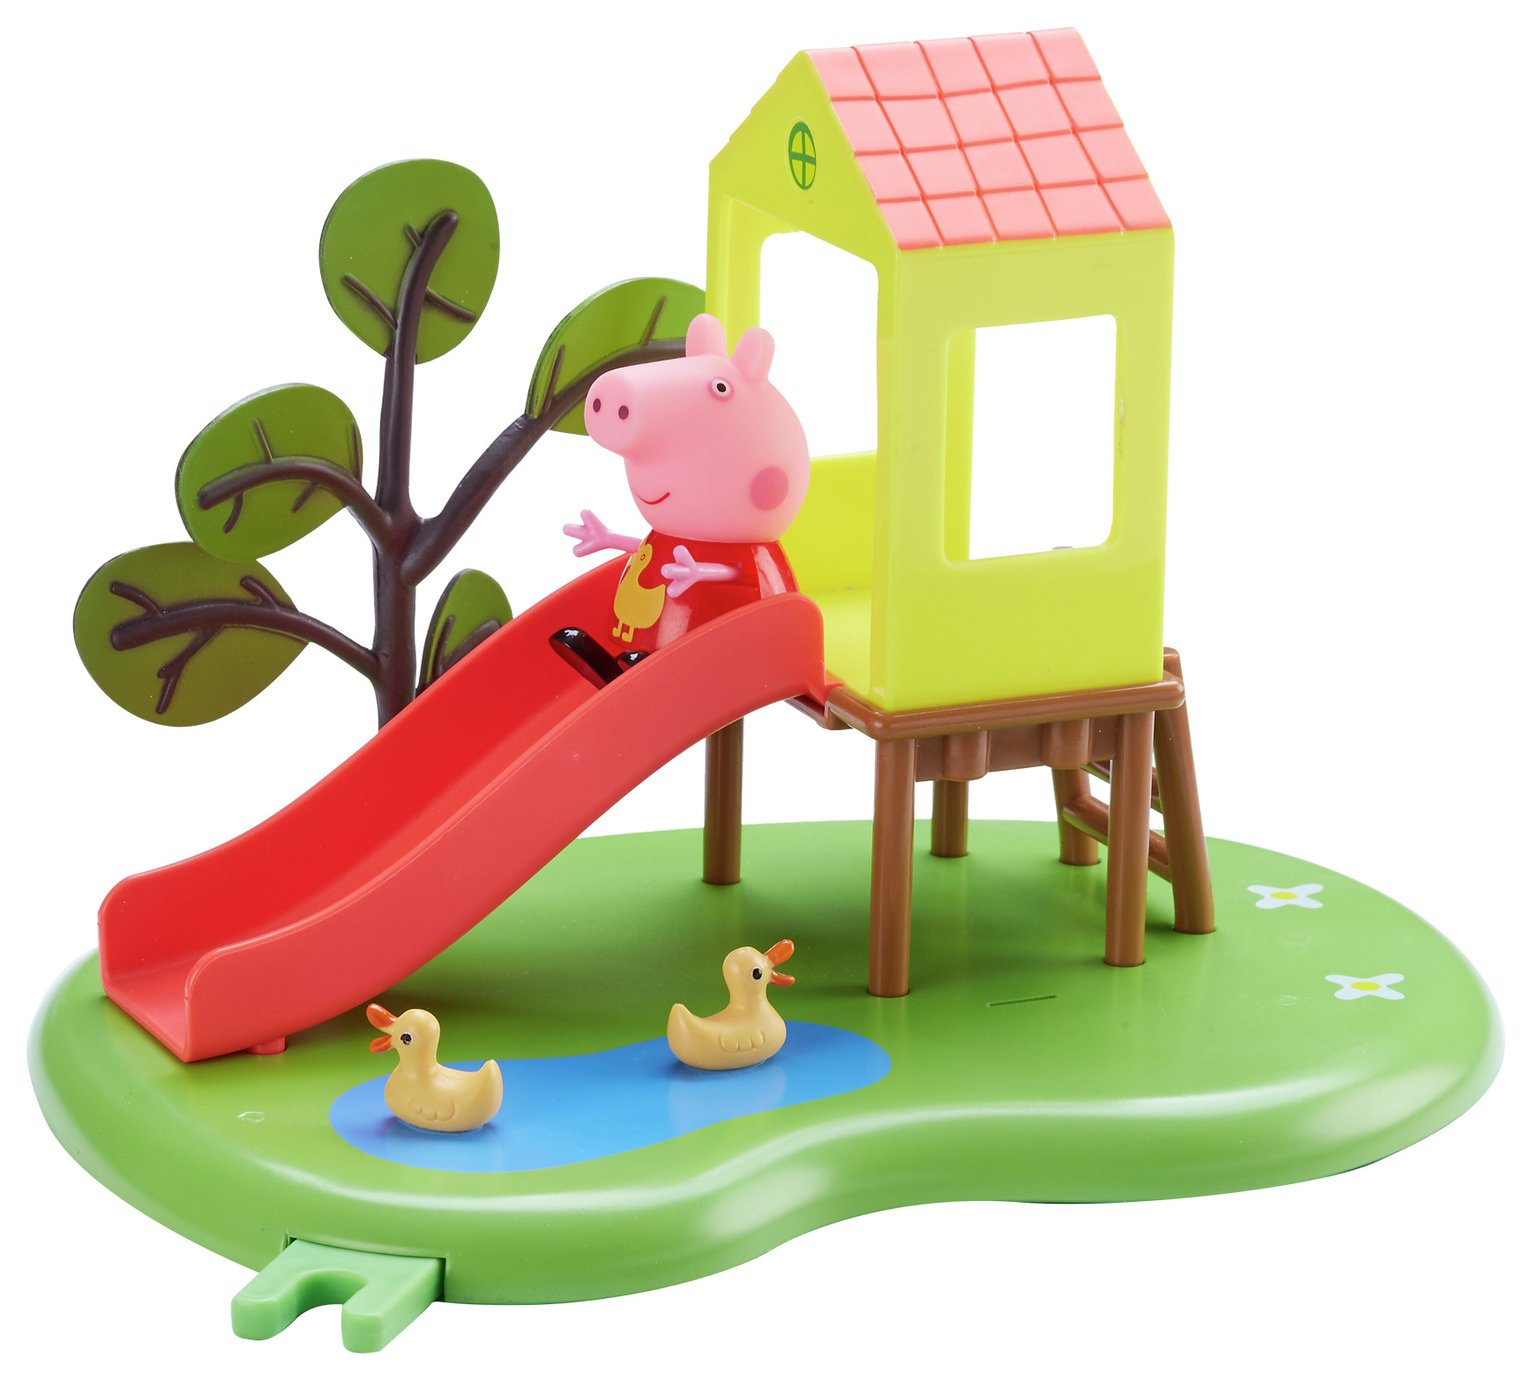 Peppa Pig Outdoor Fun Playset Assortment from Peppa pig